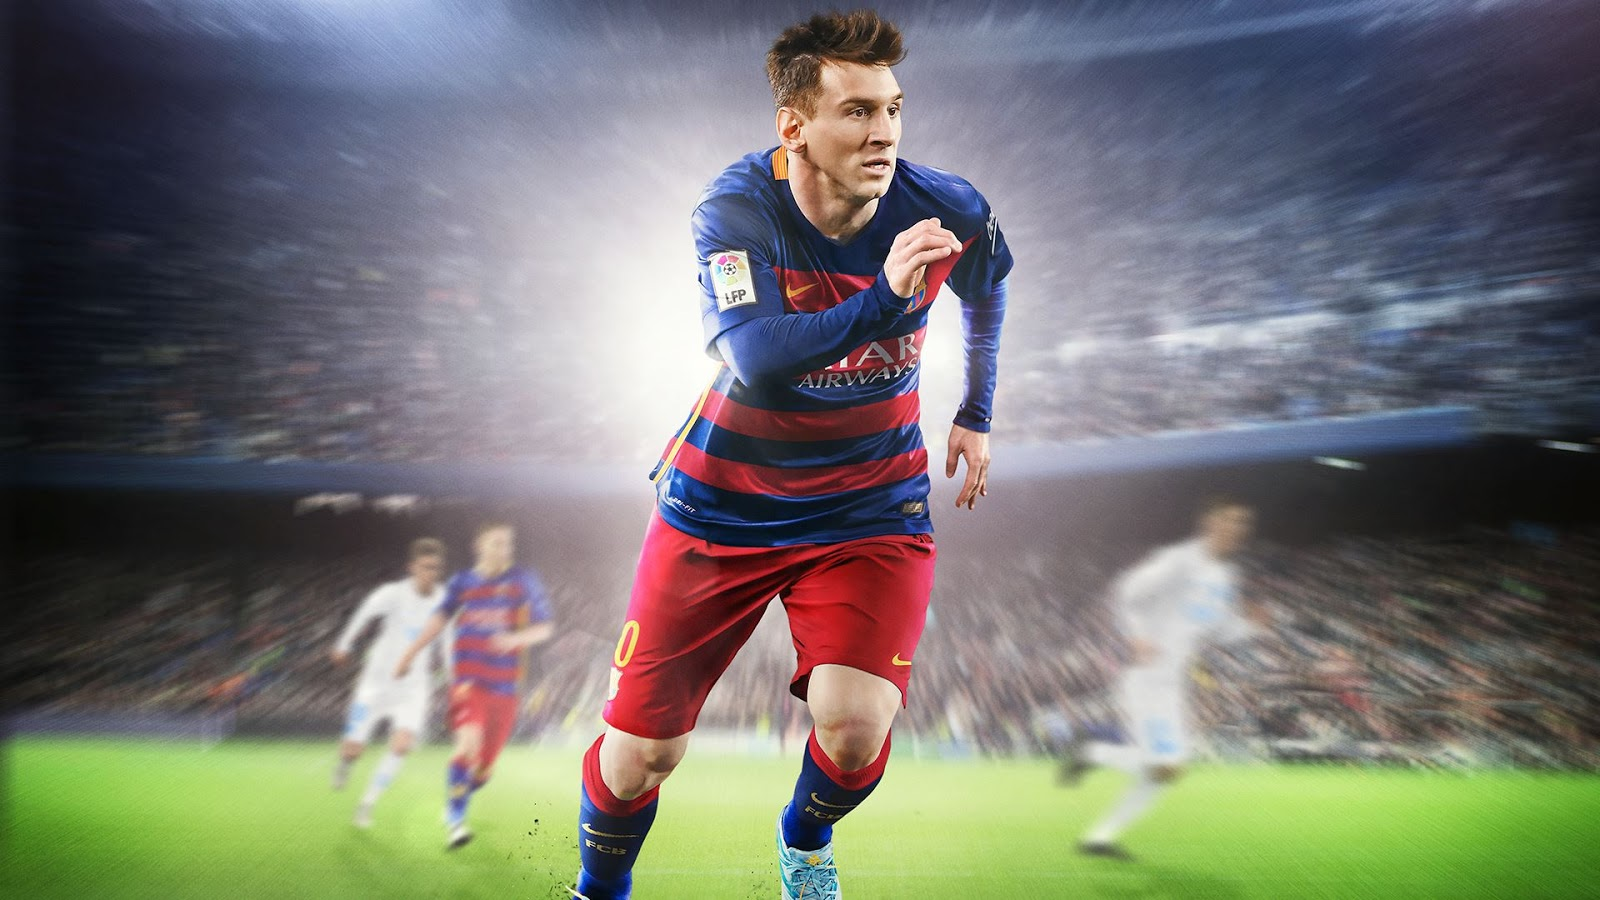 fifa 16 license key download